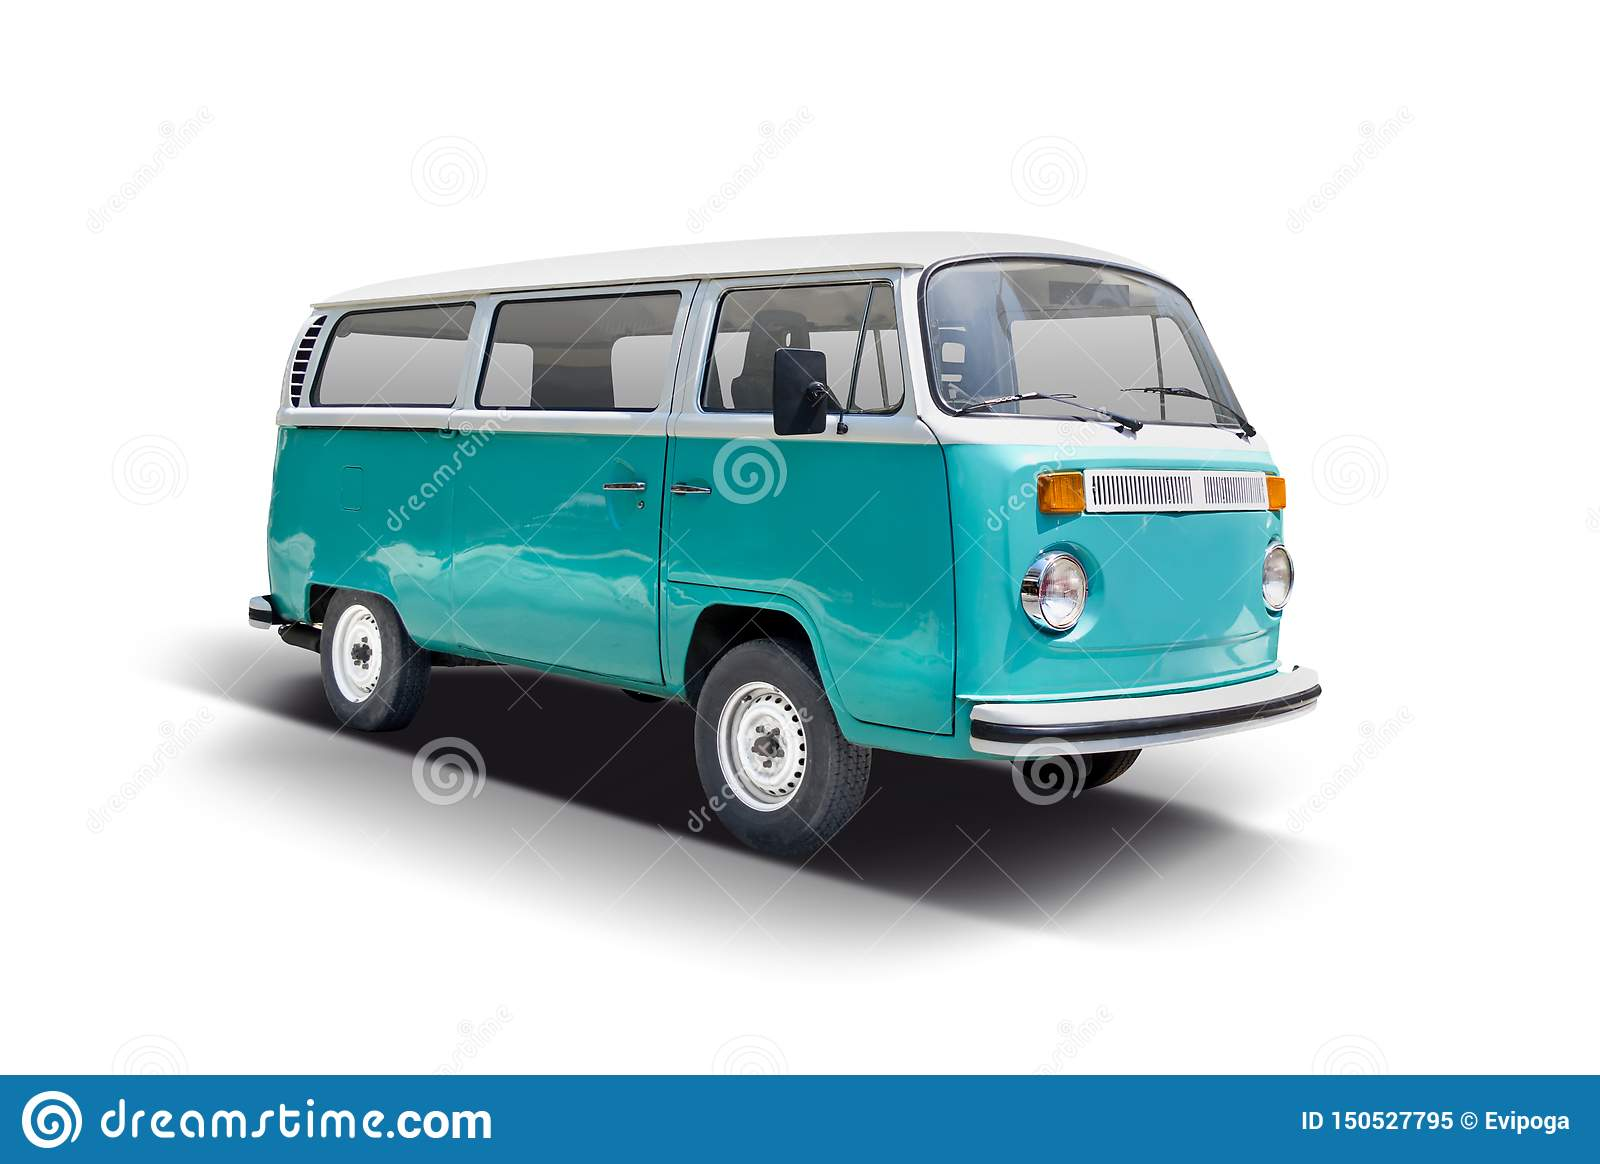 Vw Bus Van Front View Stock Image Image Of Home Isolated 150527795